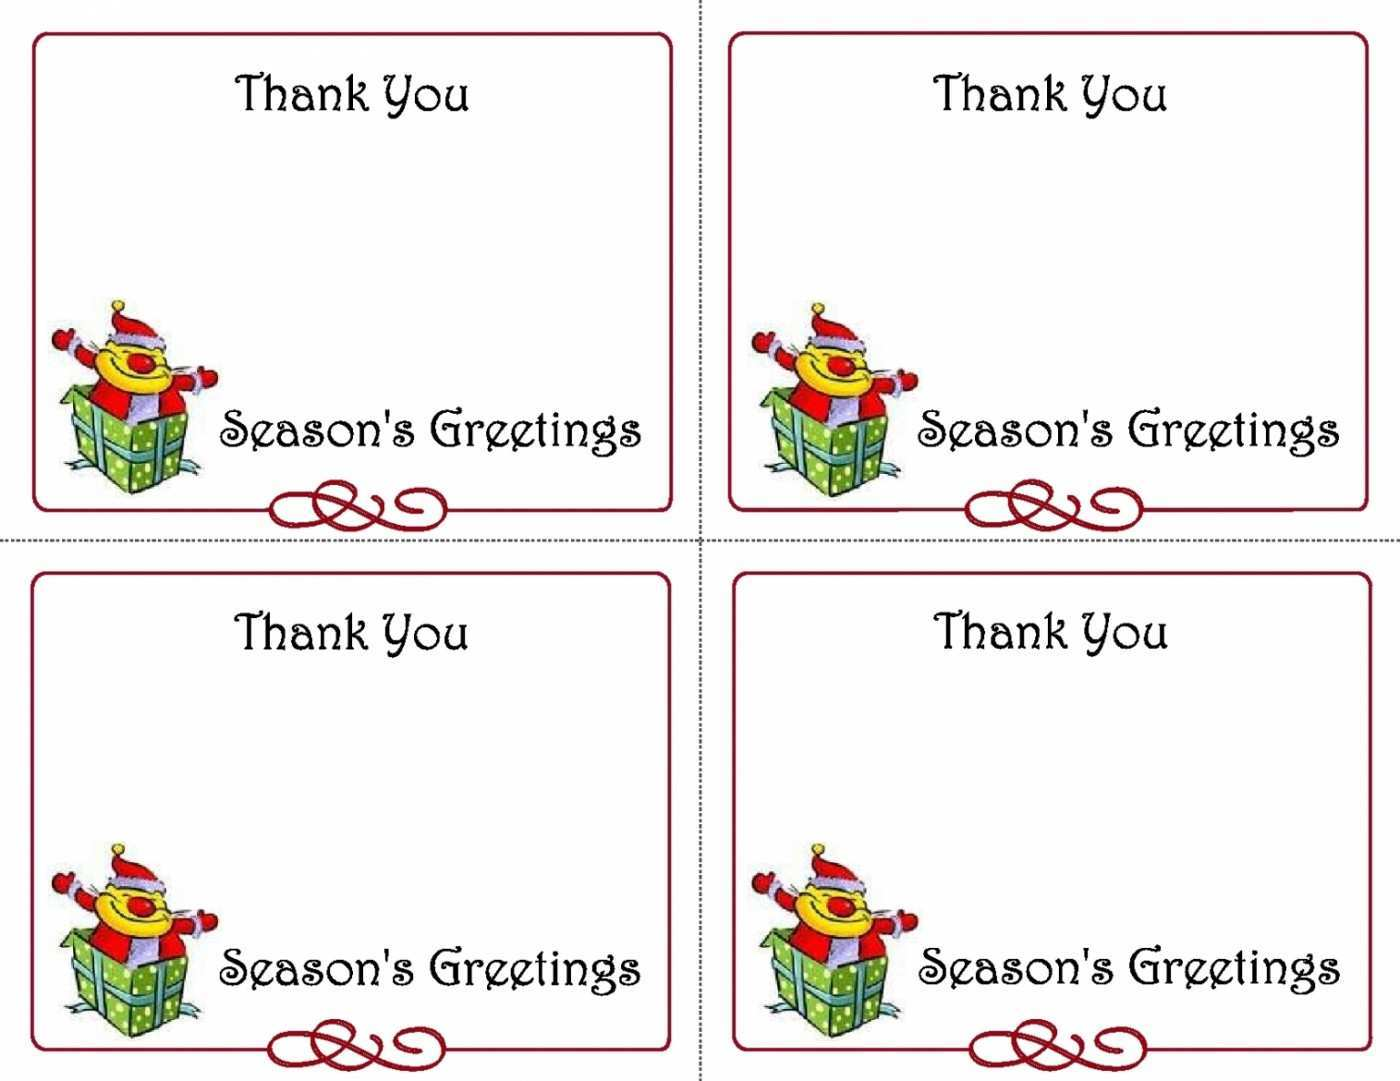 51 Customize Our Free Christmas Note Card Templates Word With Stunning Design by Christmas Note Card Templates Word